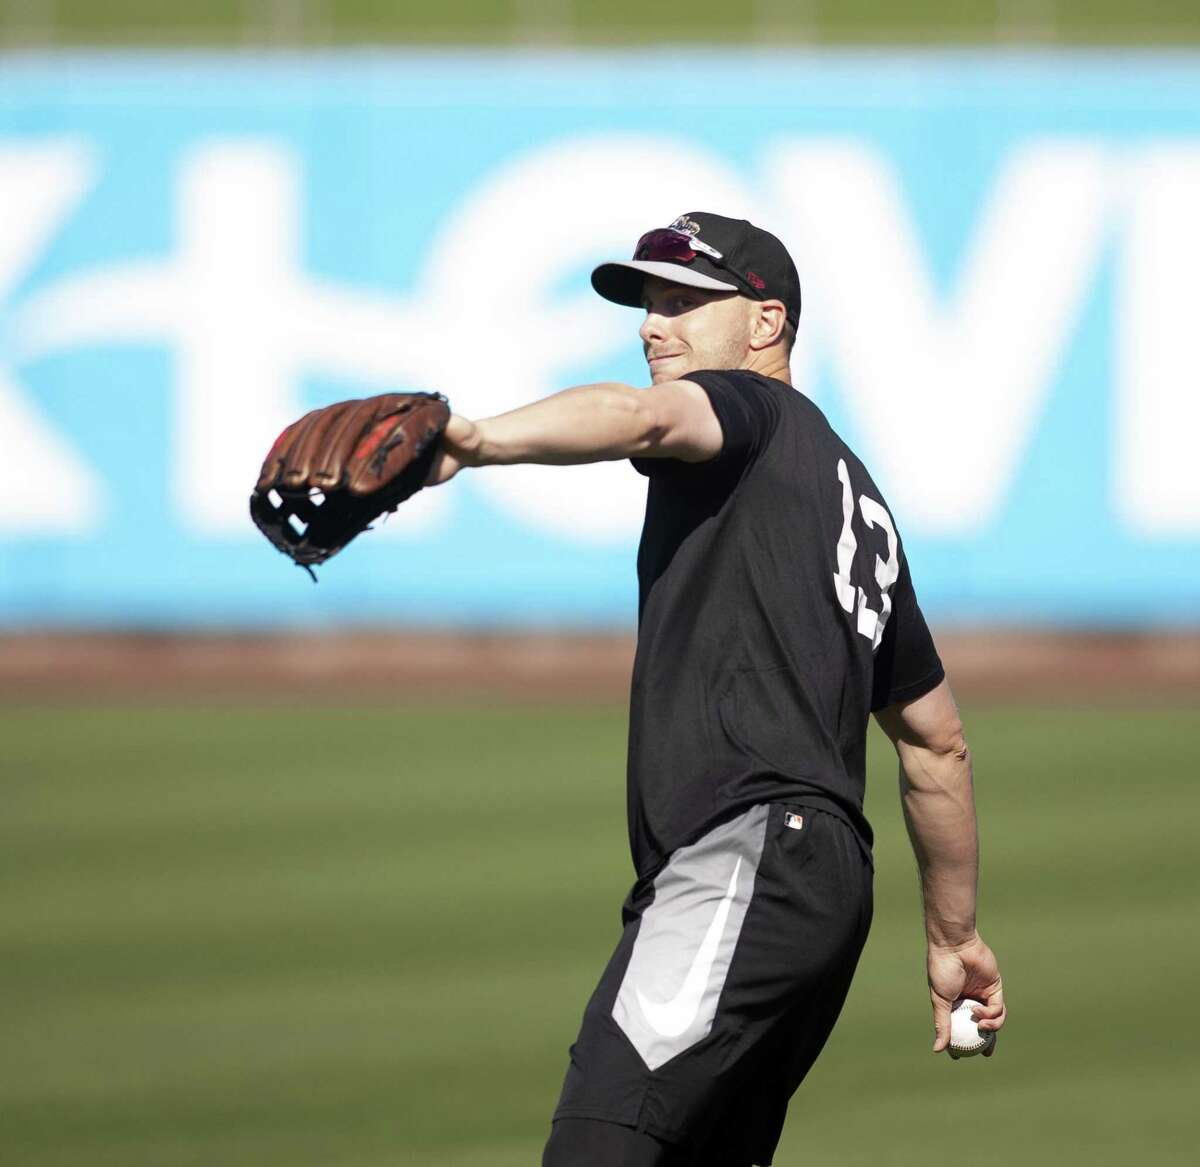 Sacramento River Cats' Austin Slater plays catch before a home game at Raley Field on Thursday, April 26, 2018 in Sacramento, Calif.